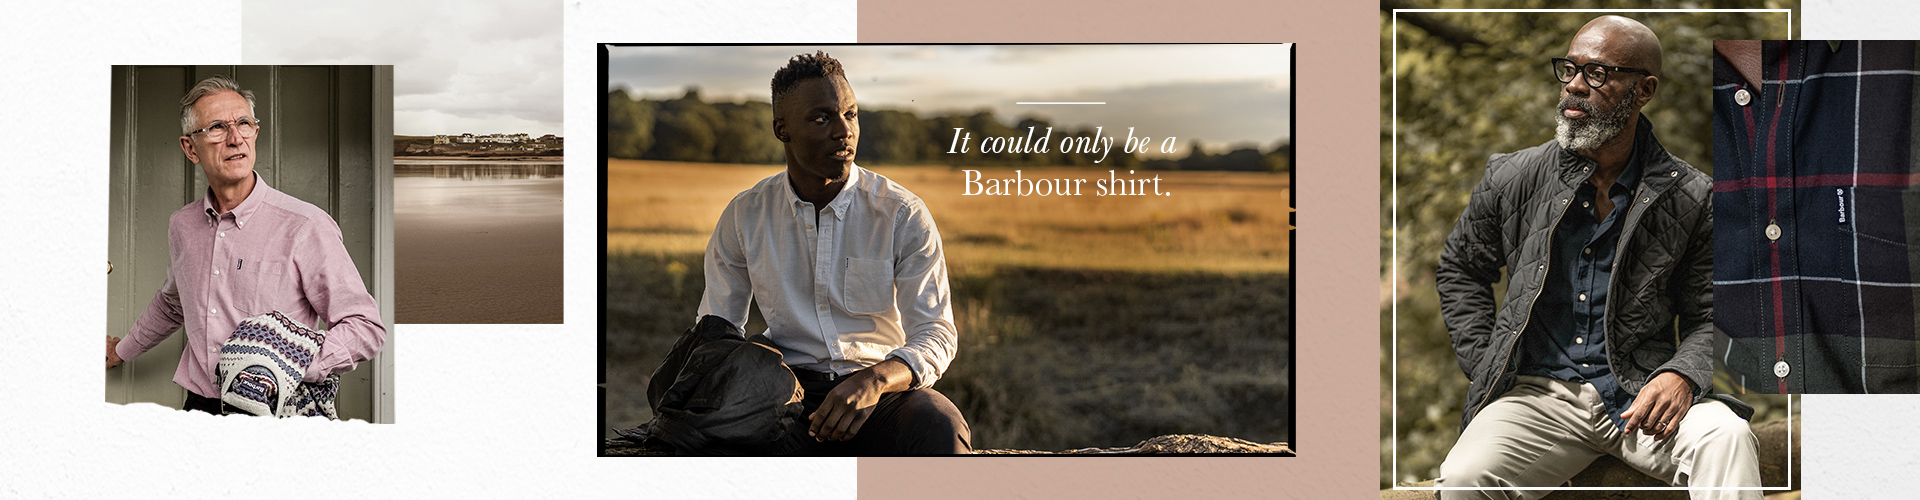 Ways to Wear the Barbour Shirt Department